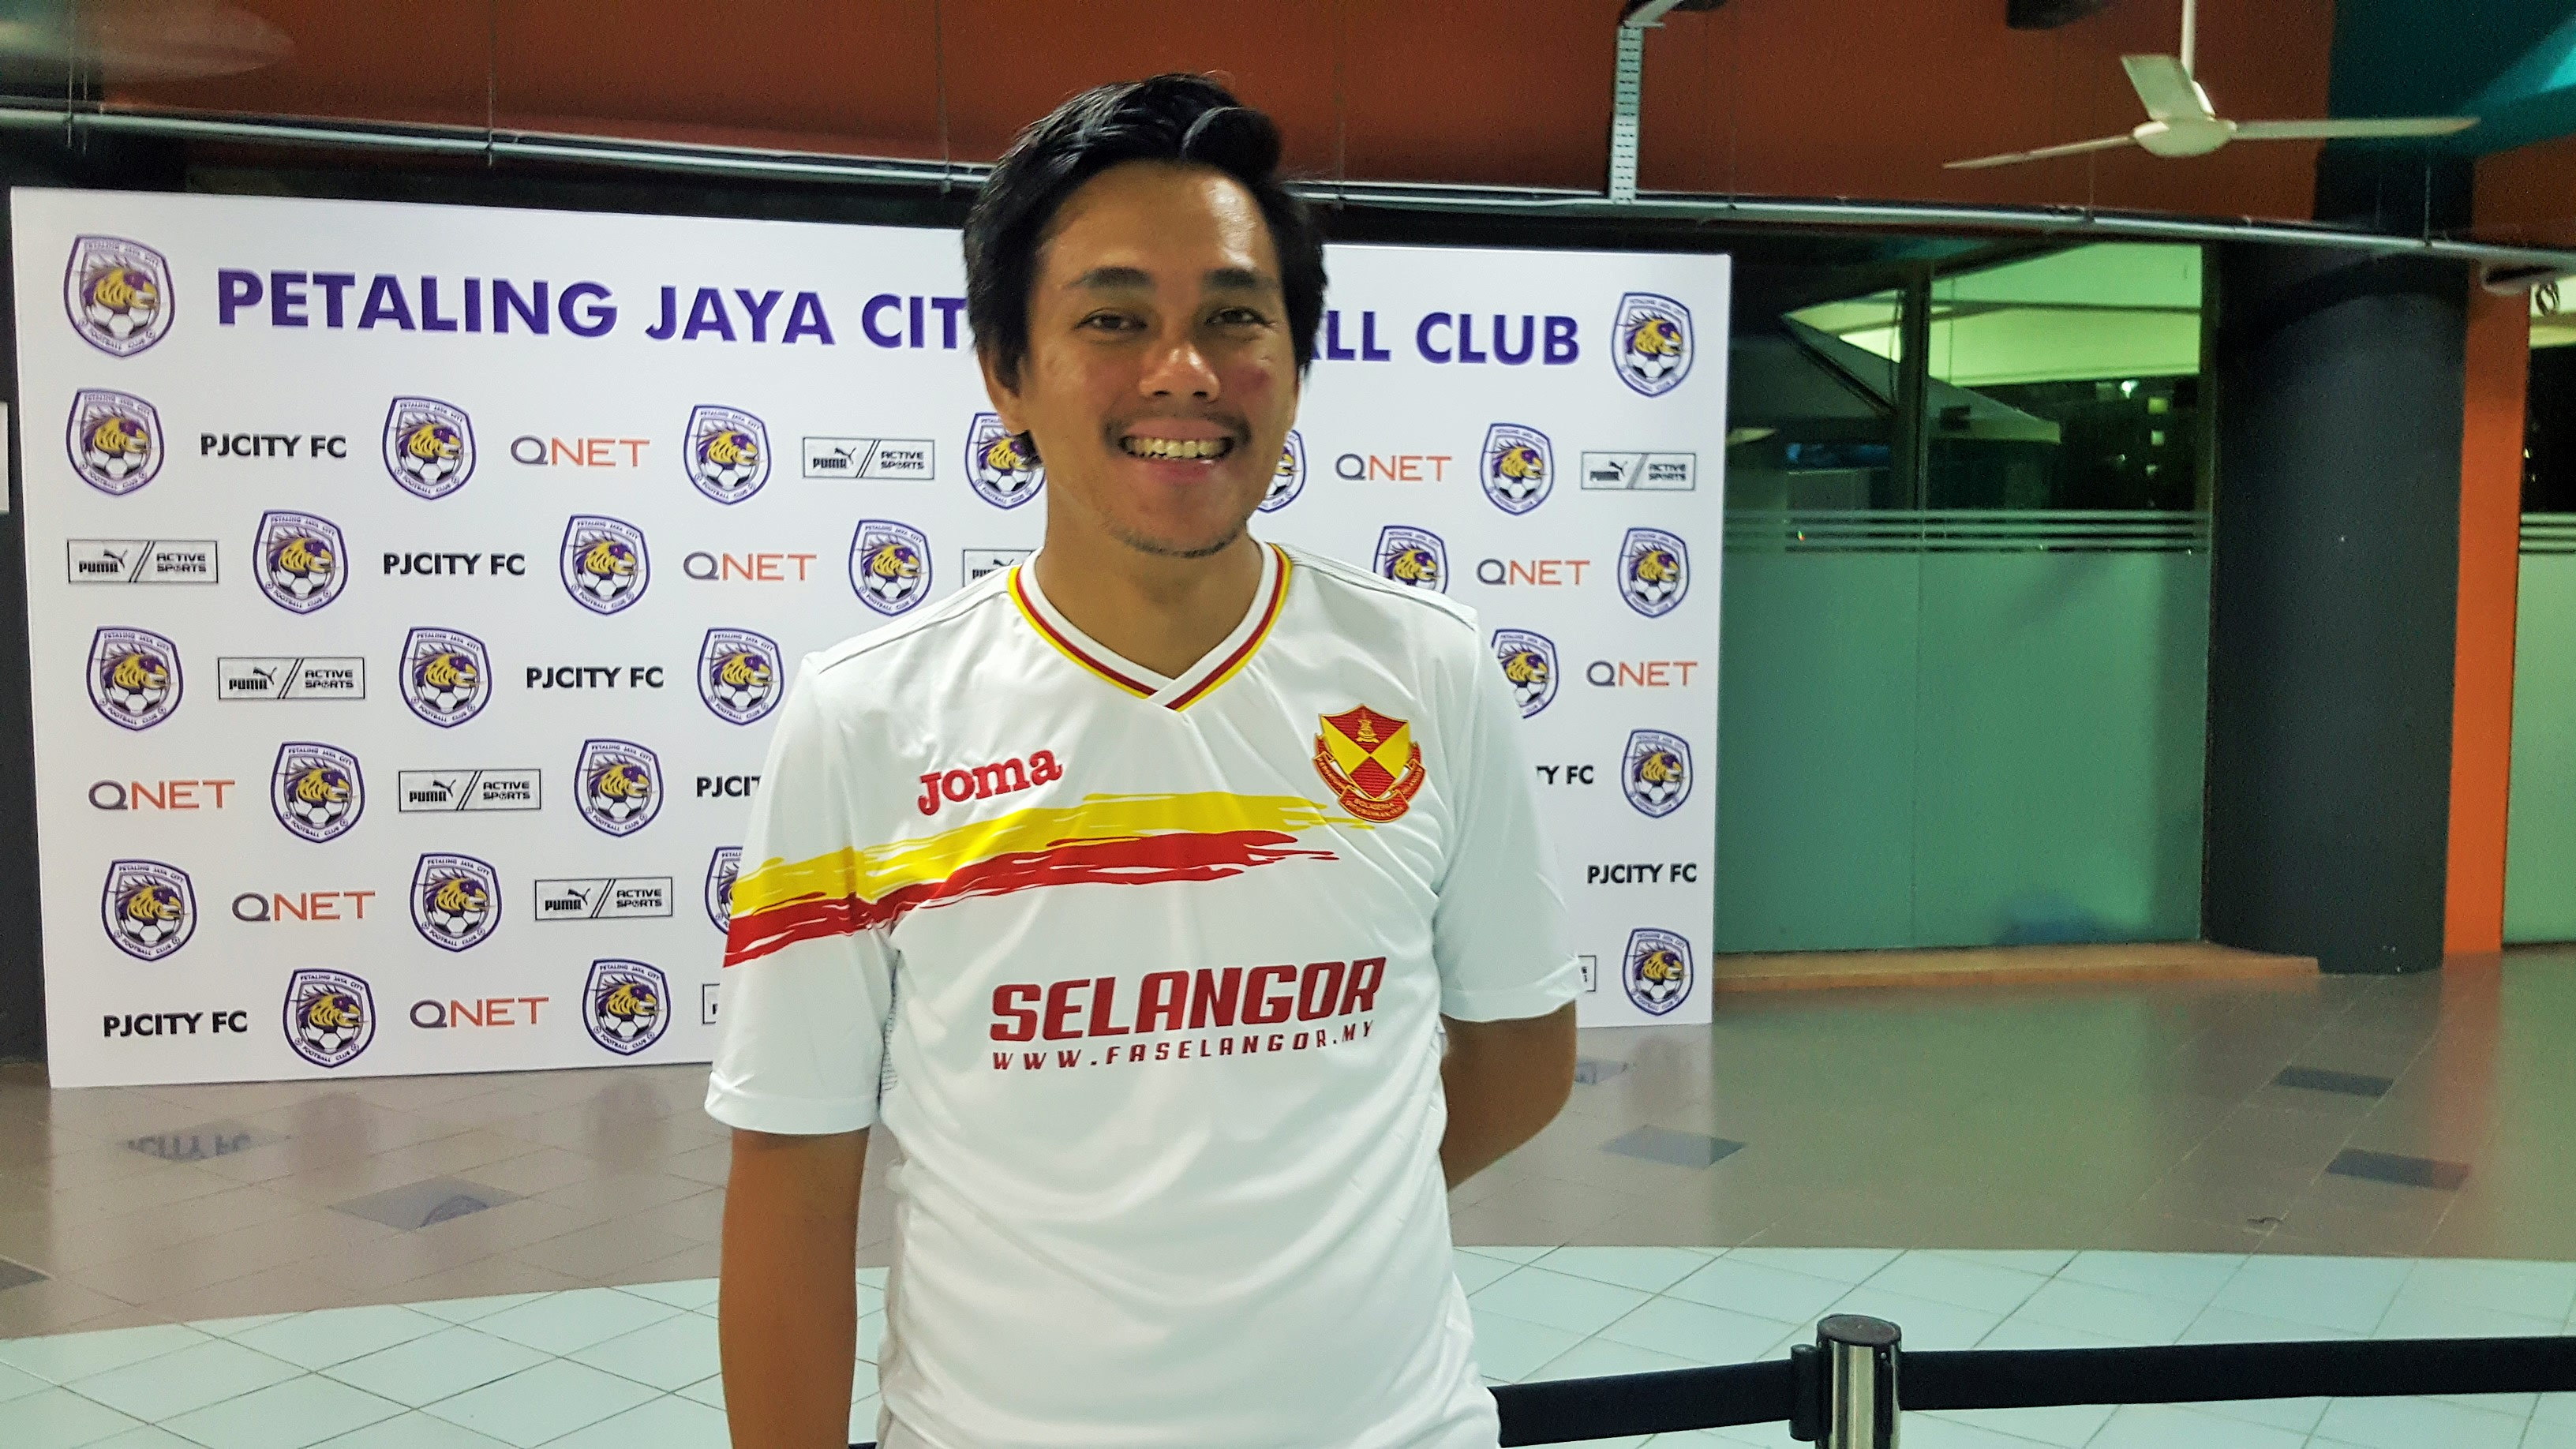 No Indonesian signing in near future for Selangor as they